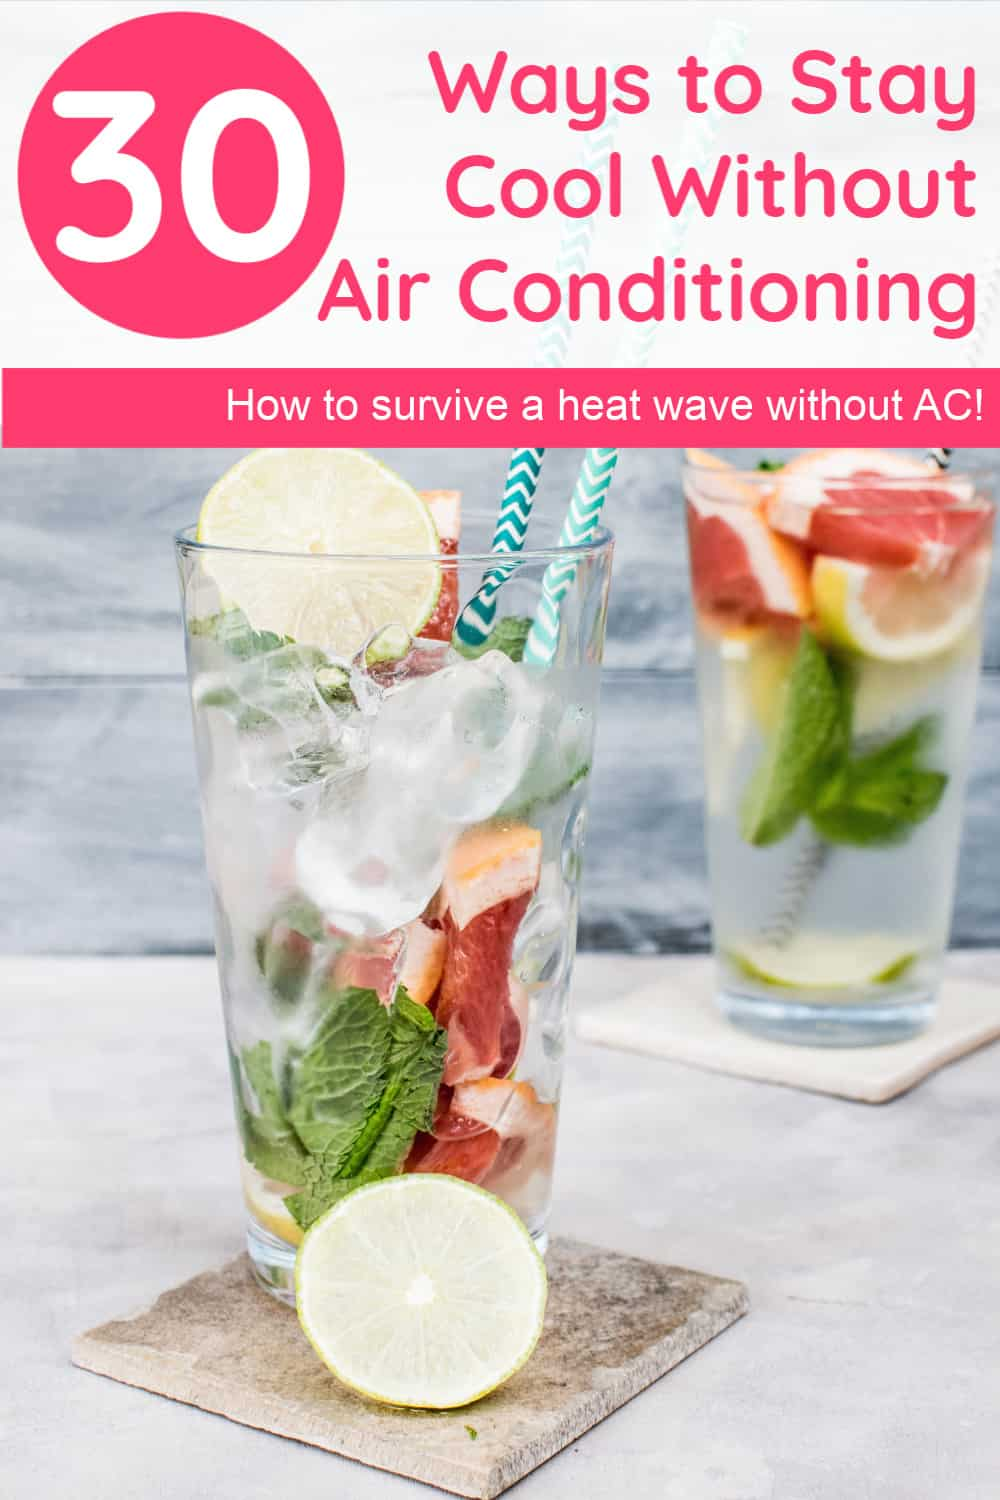 No AC? No problem! Check out these 30 tips & tricks that will help you stay cool during a brutal heat wave when you don\'t have an air conditioner!